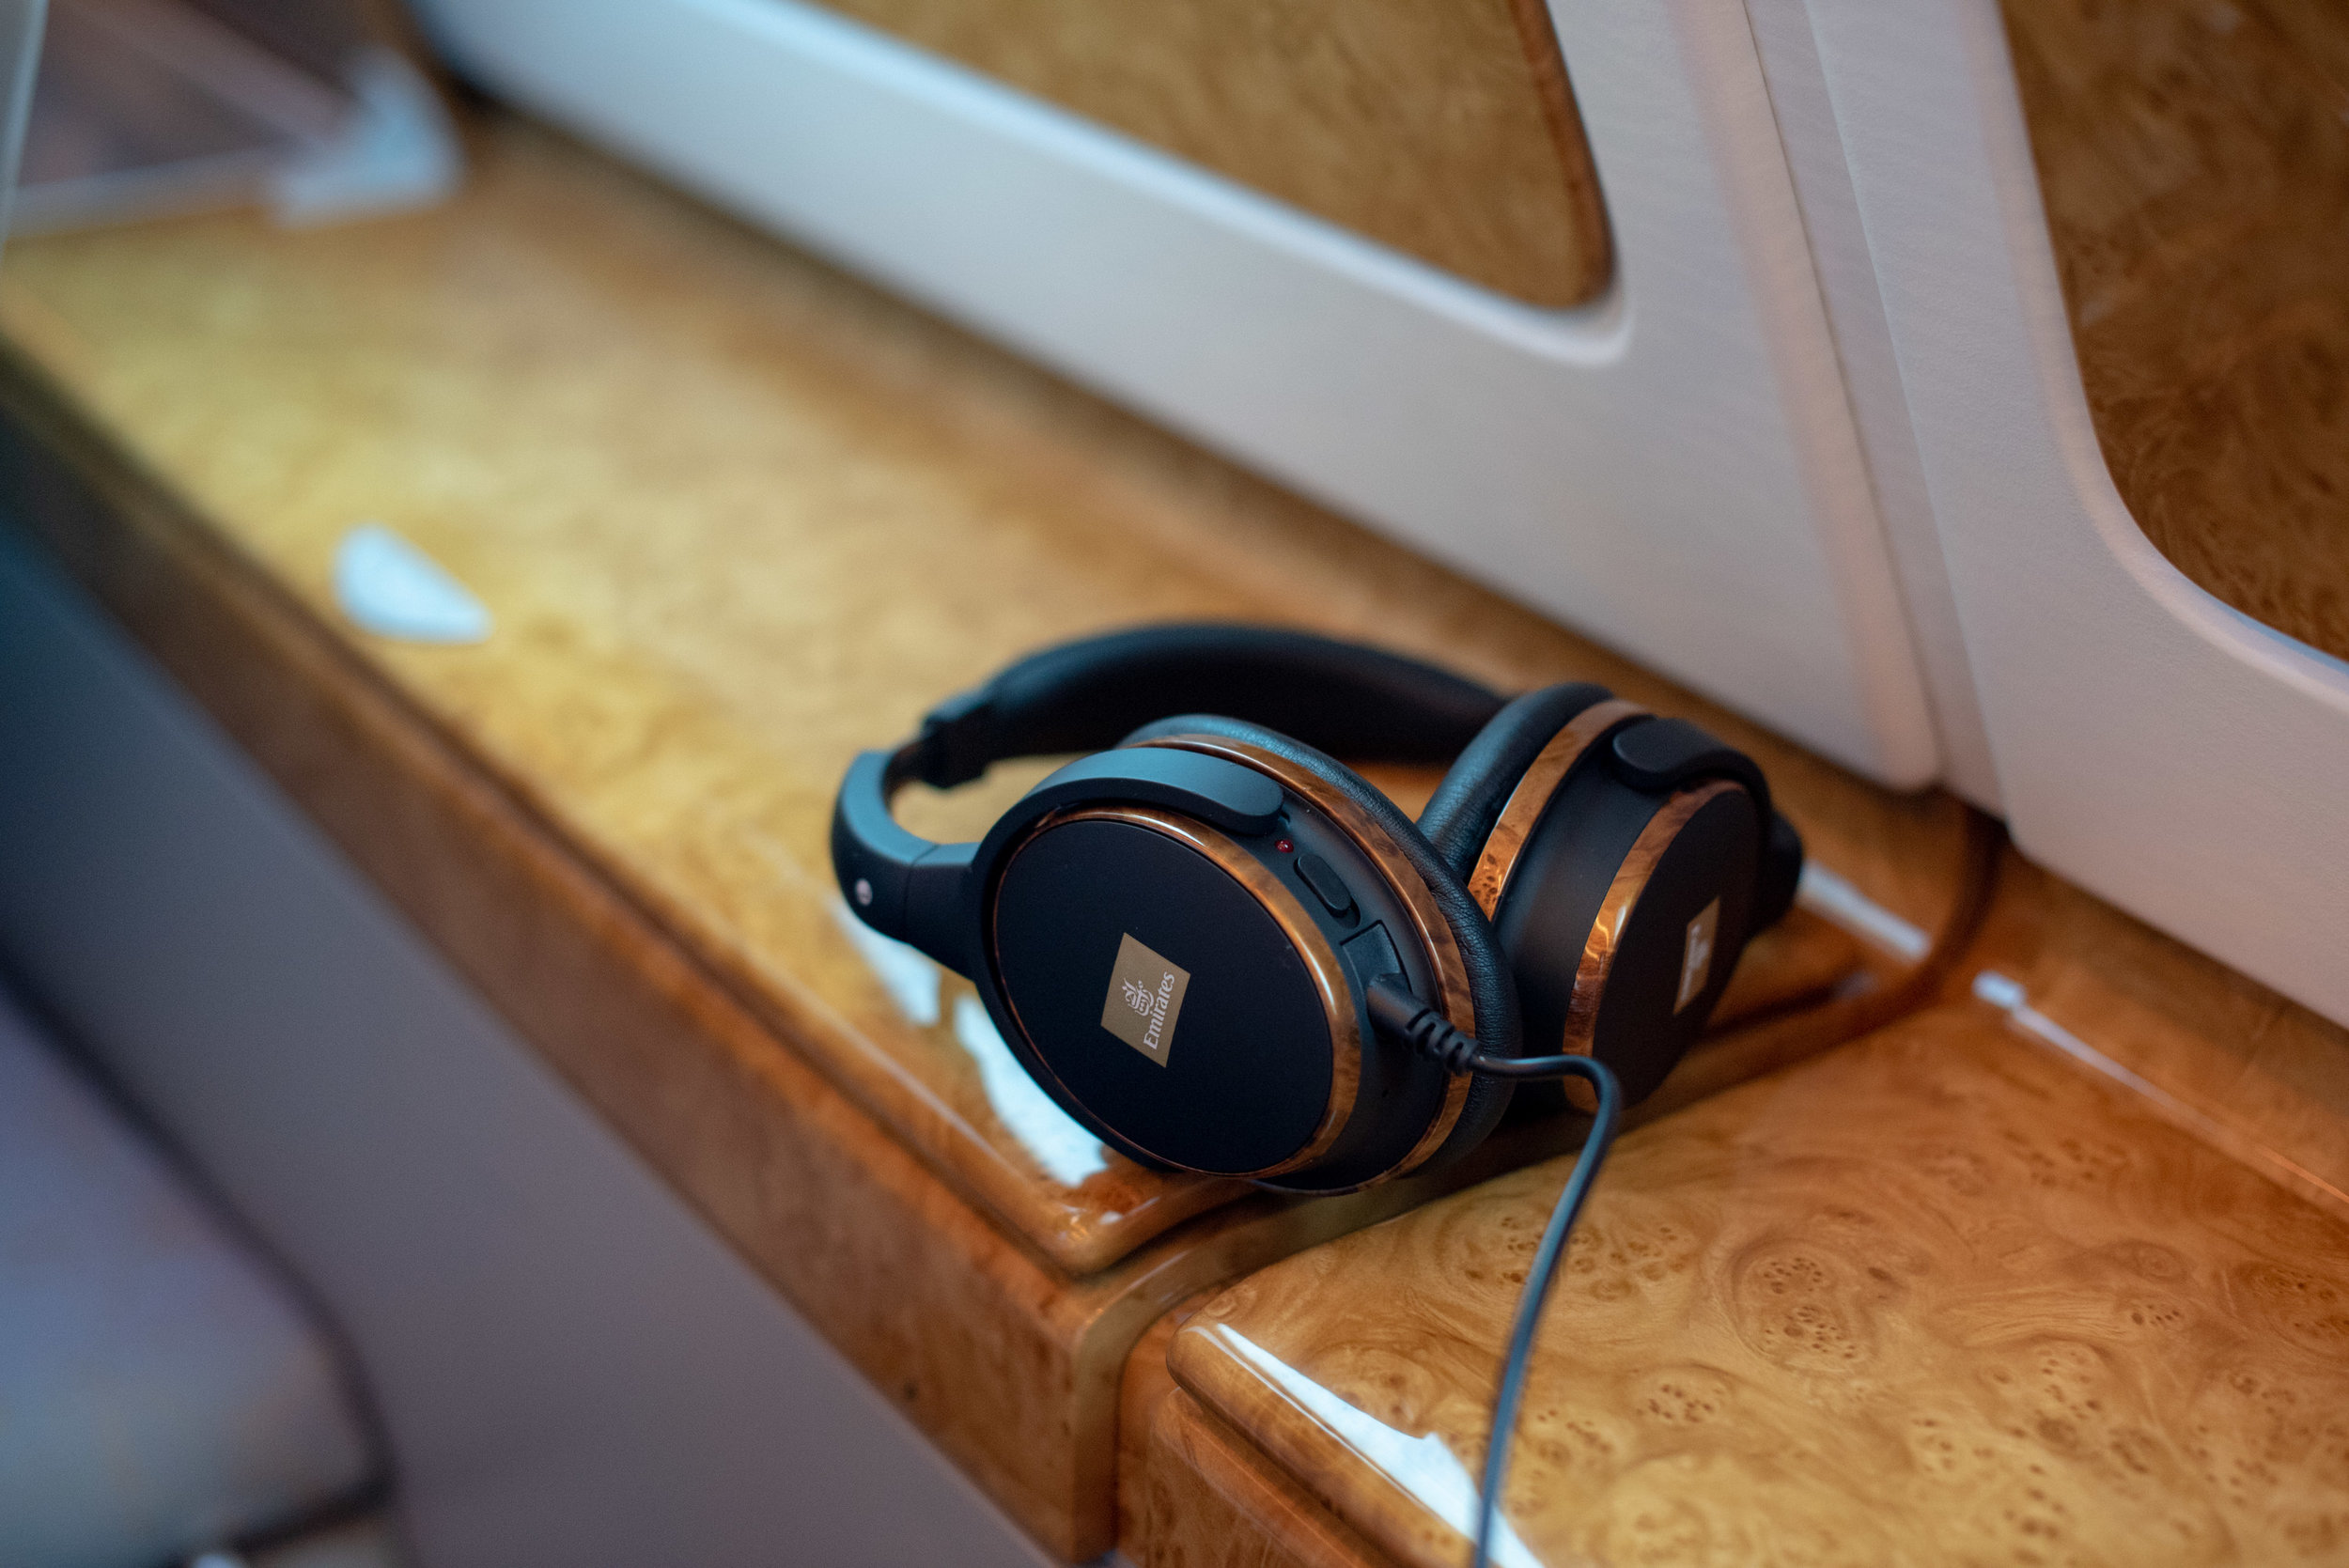 Noise-cancelling Headphones in Business Class  Emirates Business Class EK203 A380-800 - DXB to JFK